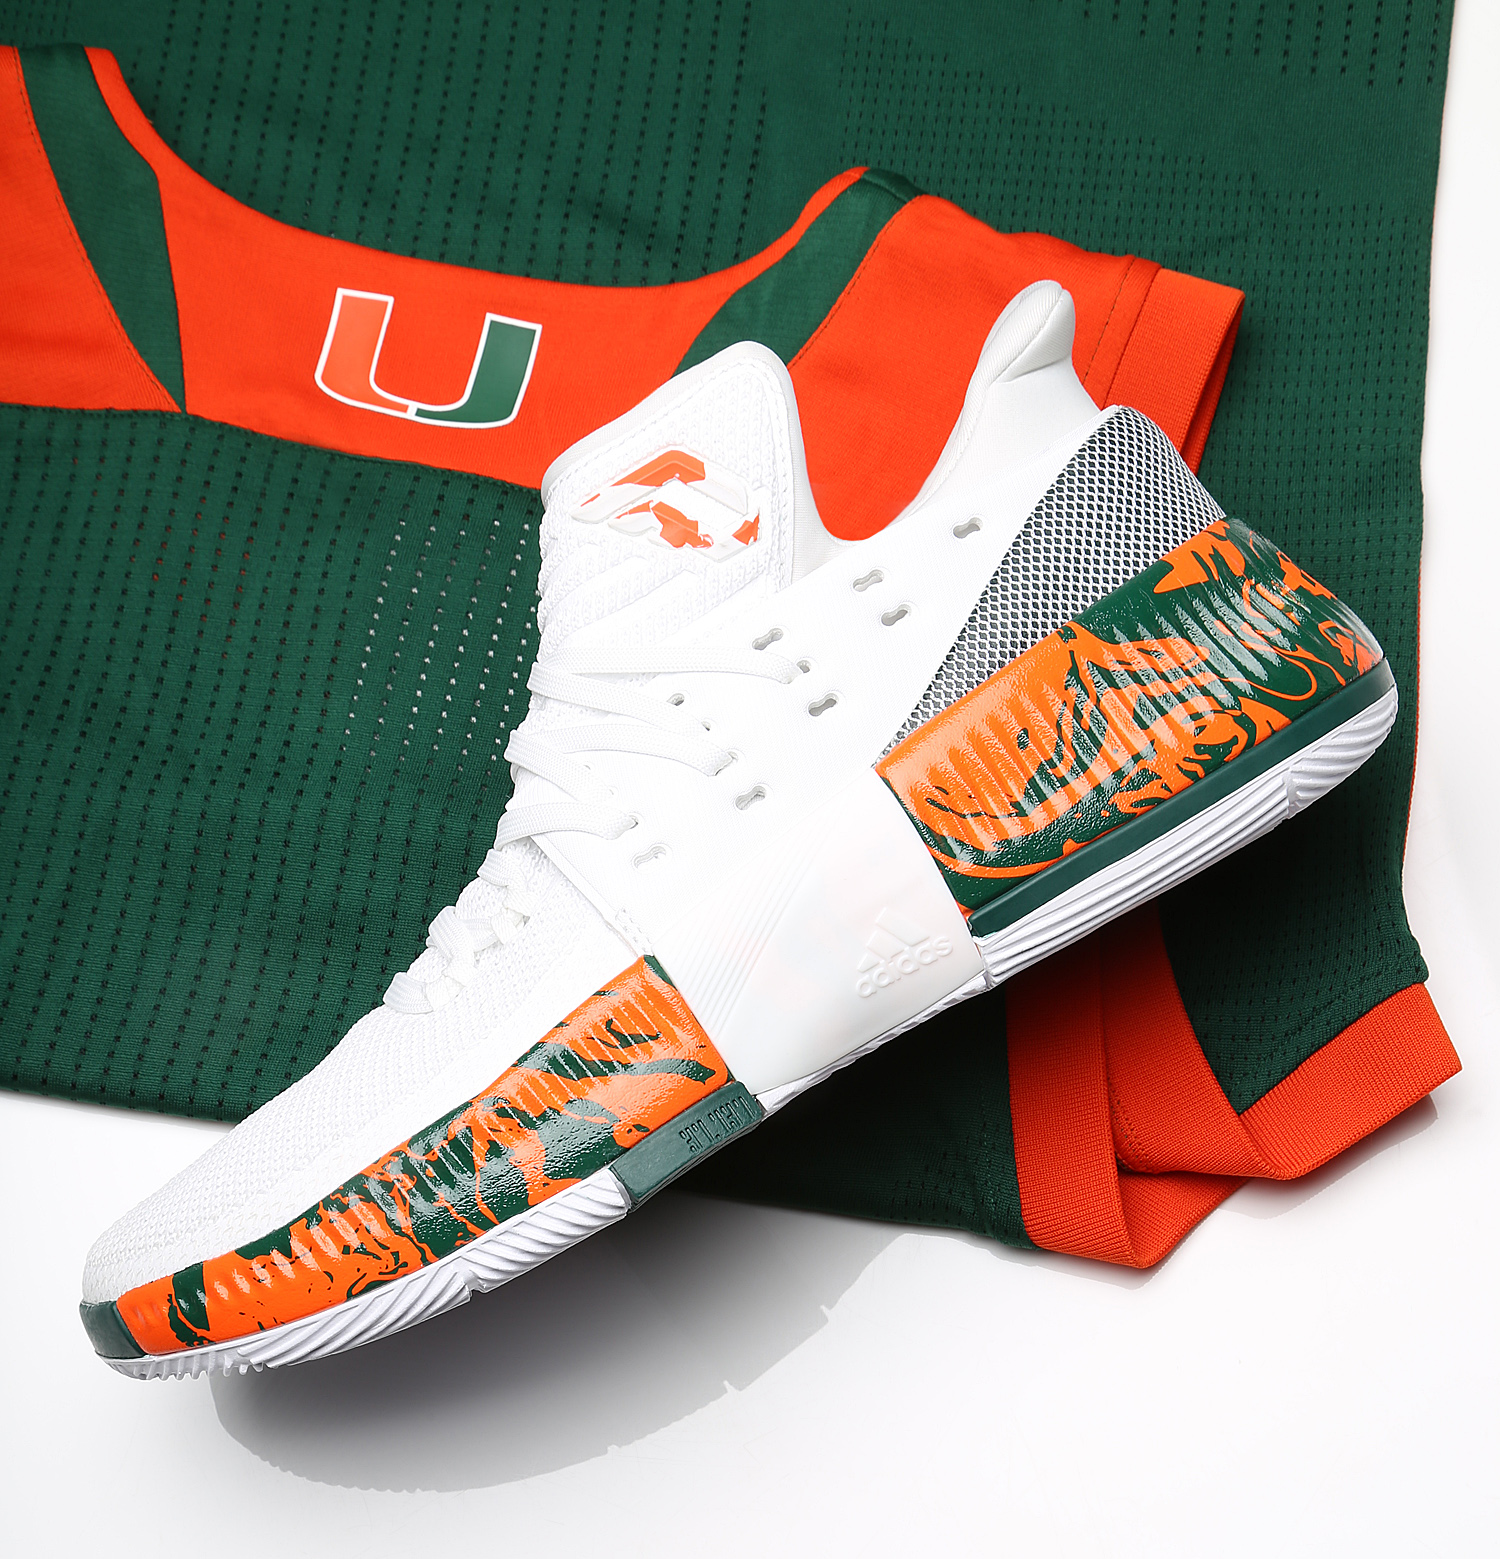 Exclusive Look At Miami s Adidas Dame 3 PEs For March Madness  e8fa1066c